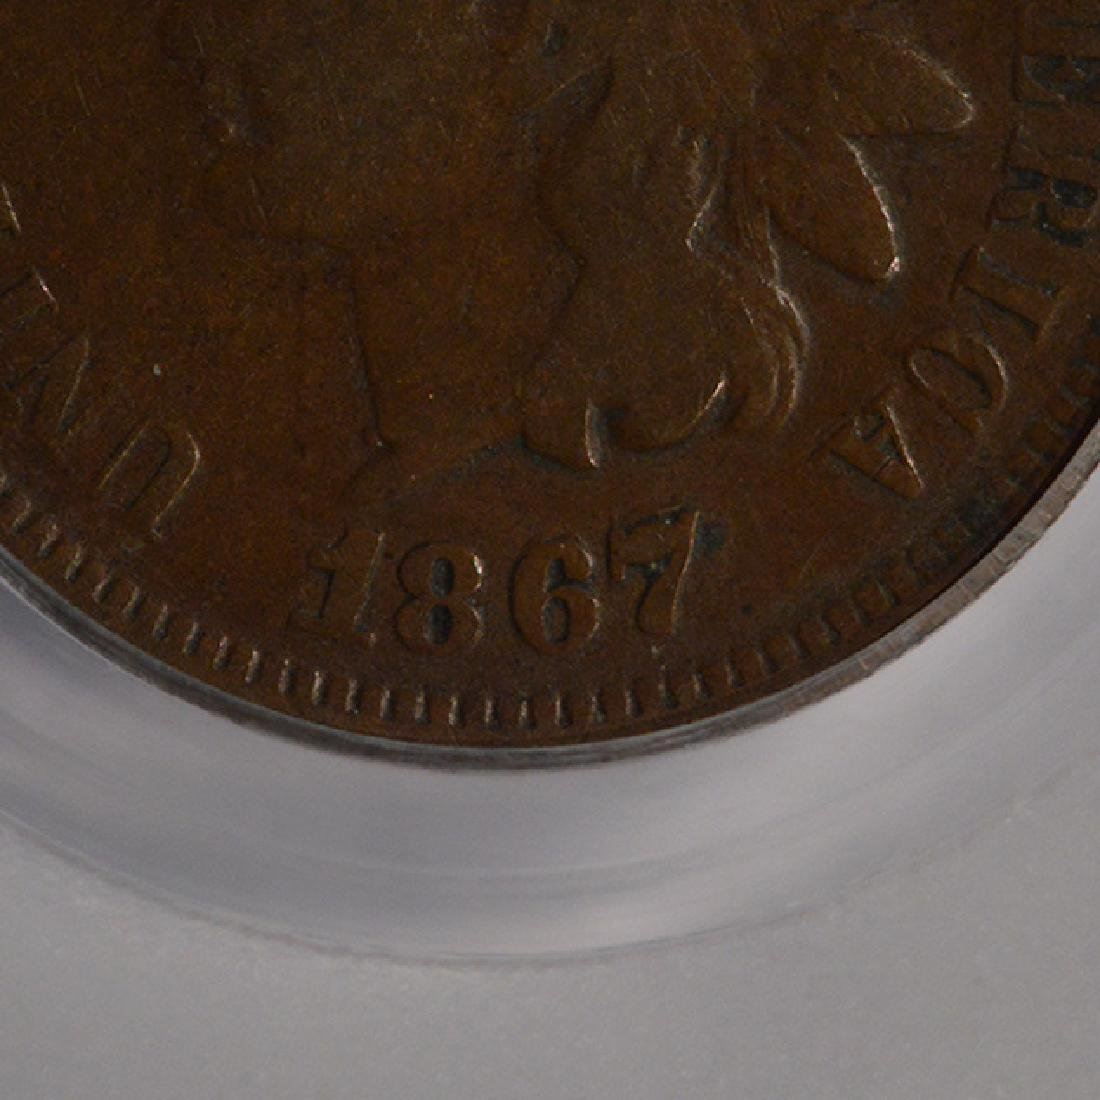 1867/67 Indian Cent Coin PCGS VG10 - 4